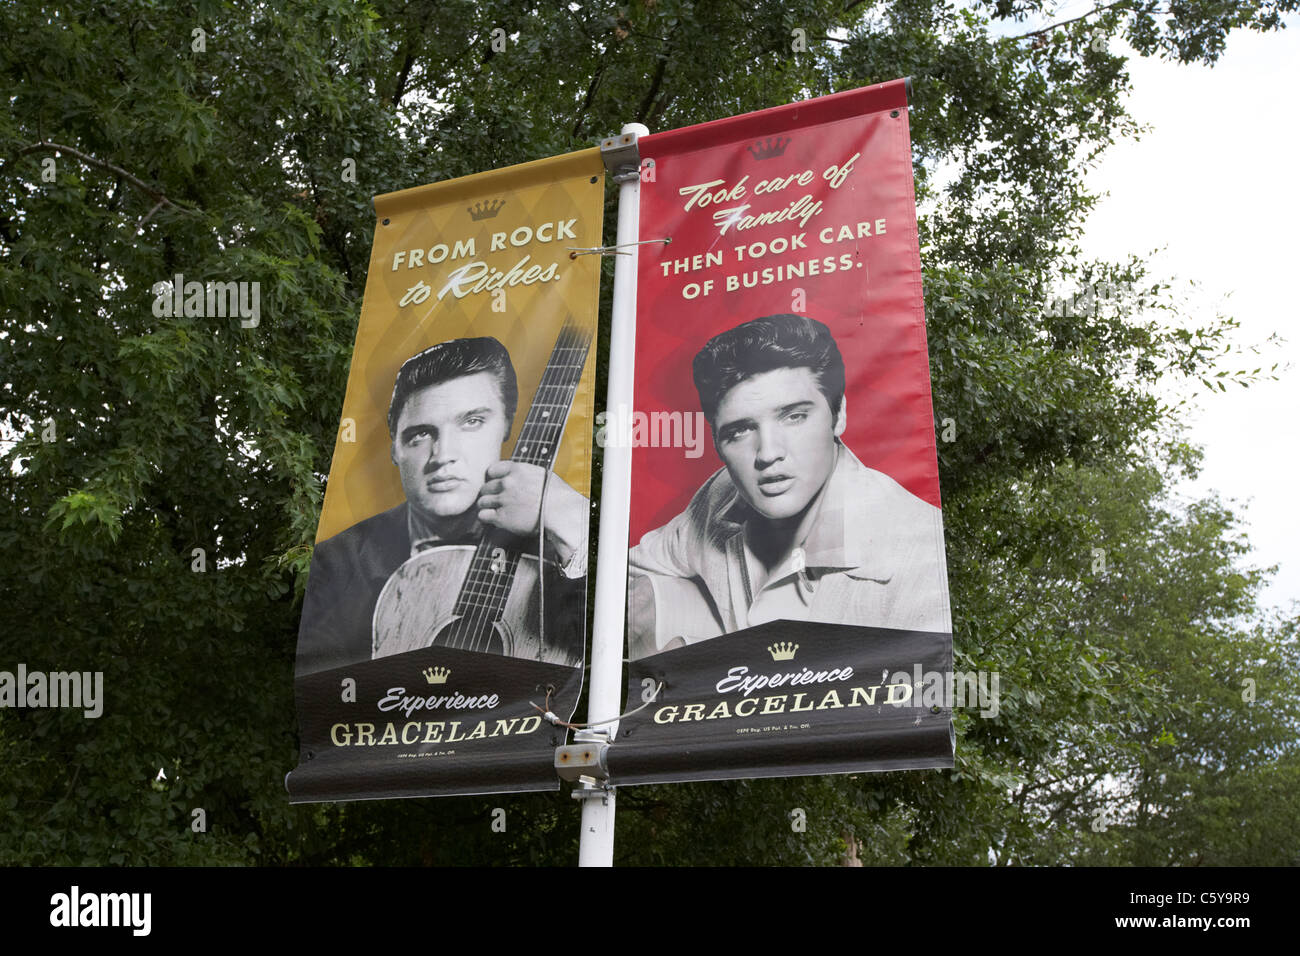 posters and banner adverts for graceland featuring elvis presley memphis tennessee usa - Stock Image